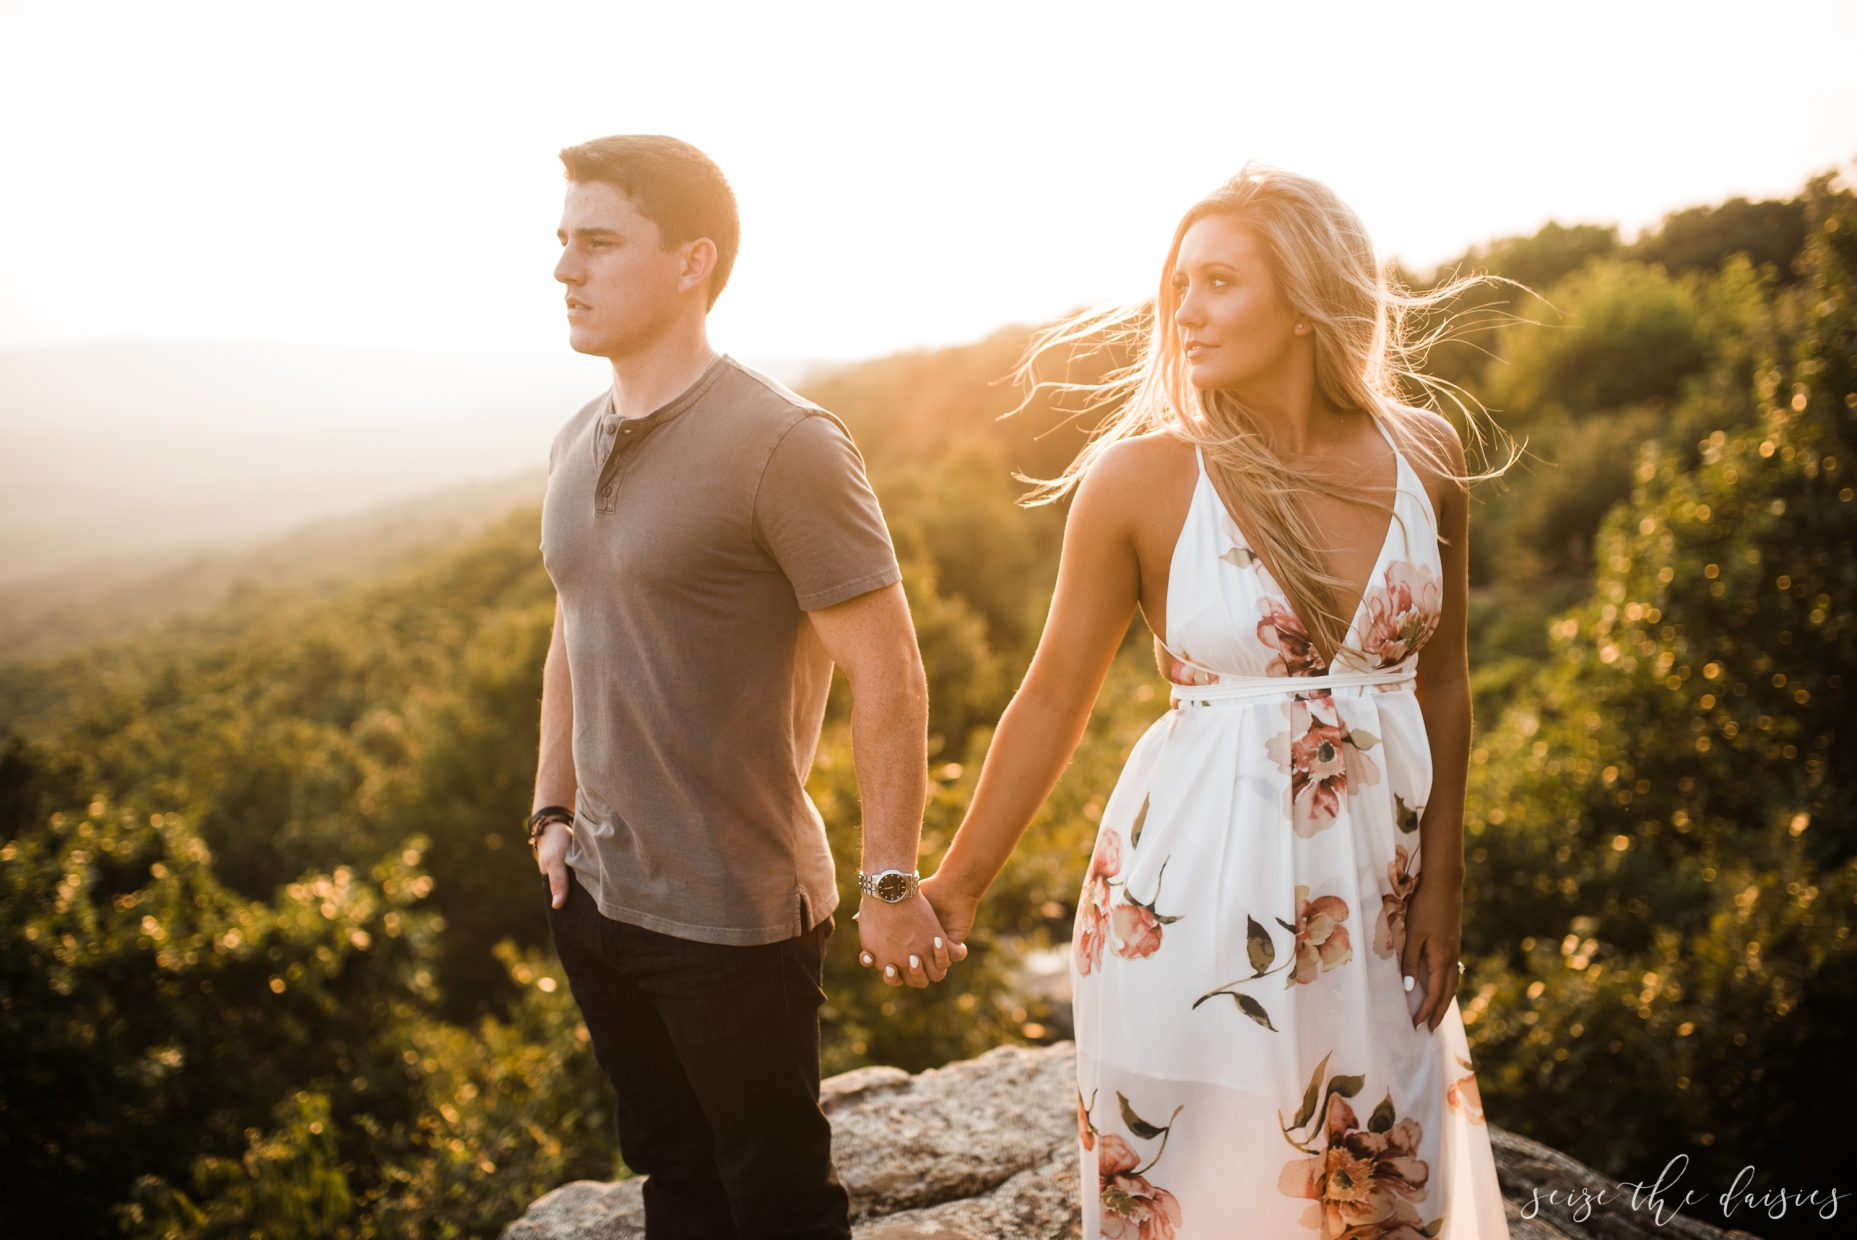 maddy-easton-petit-jean-little-rock-engagement-session-seize-the-daisies (304 of 333)